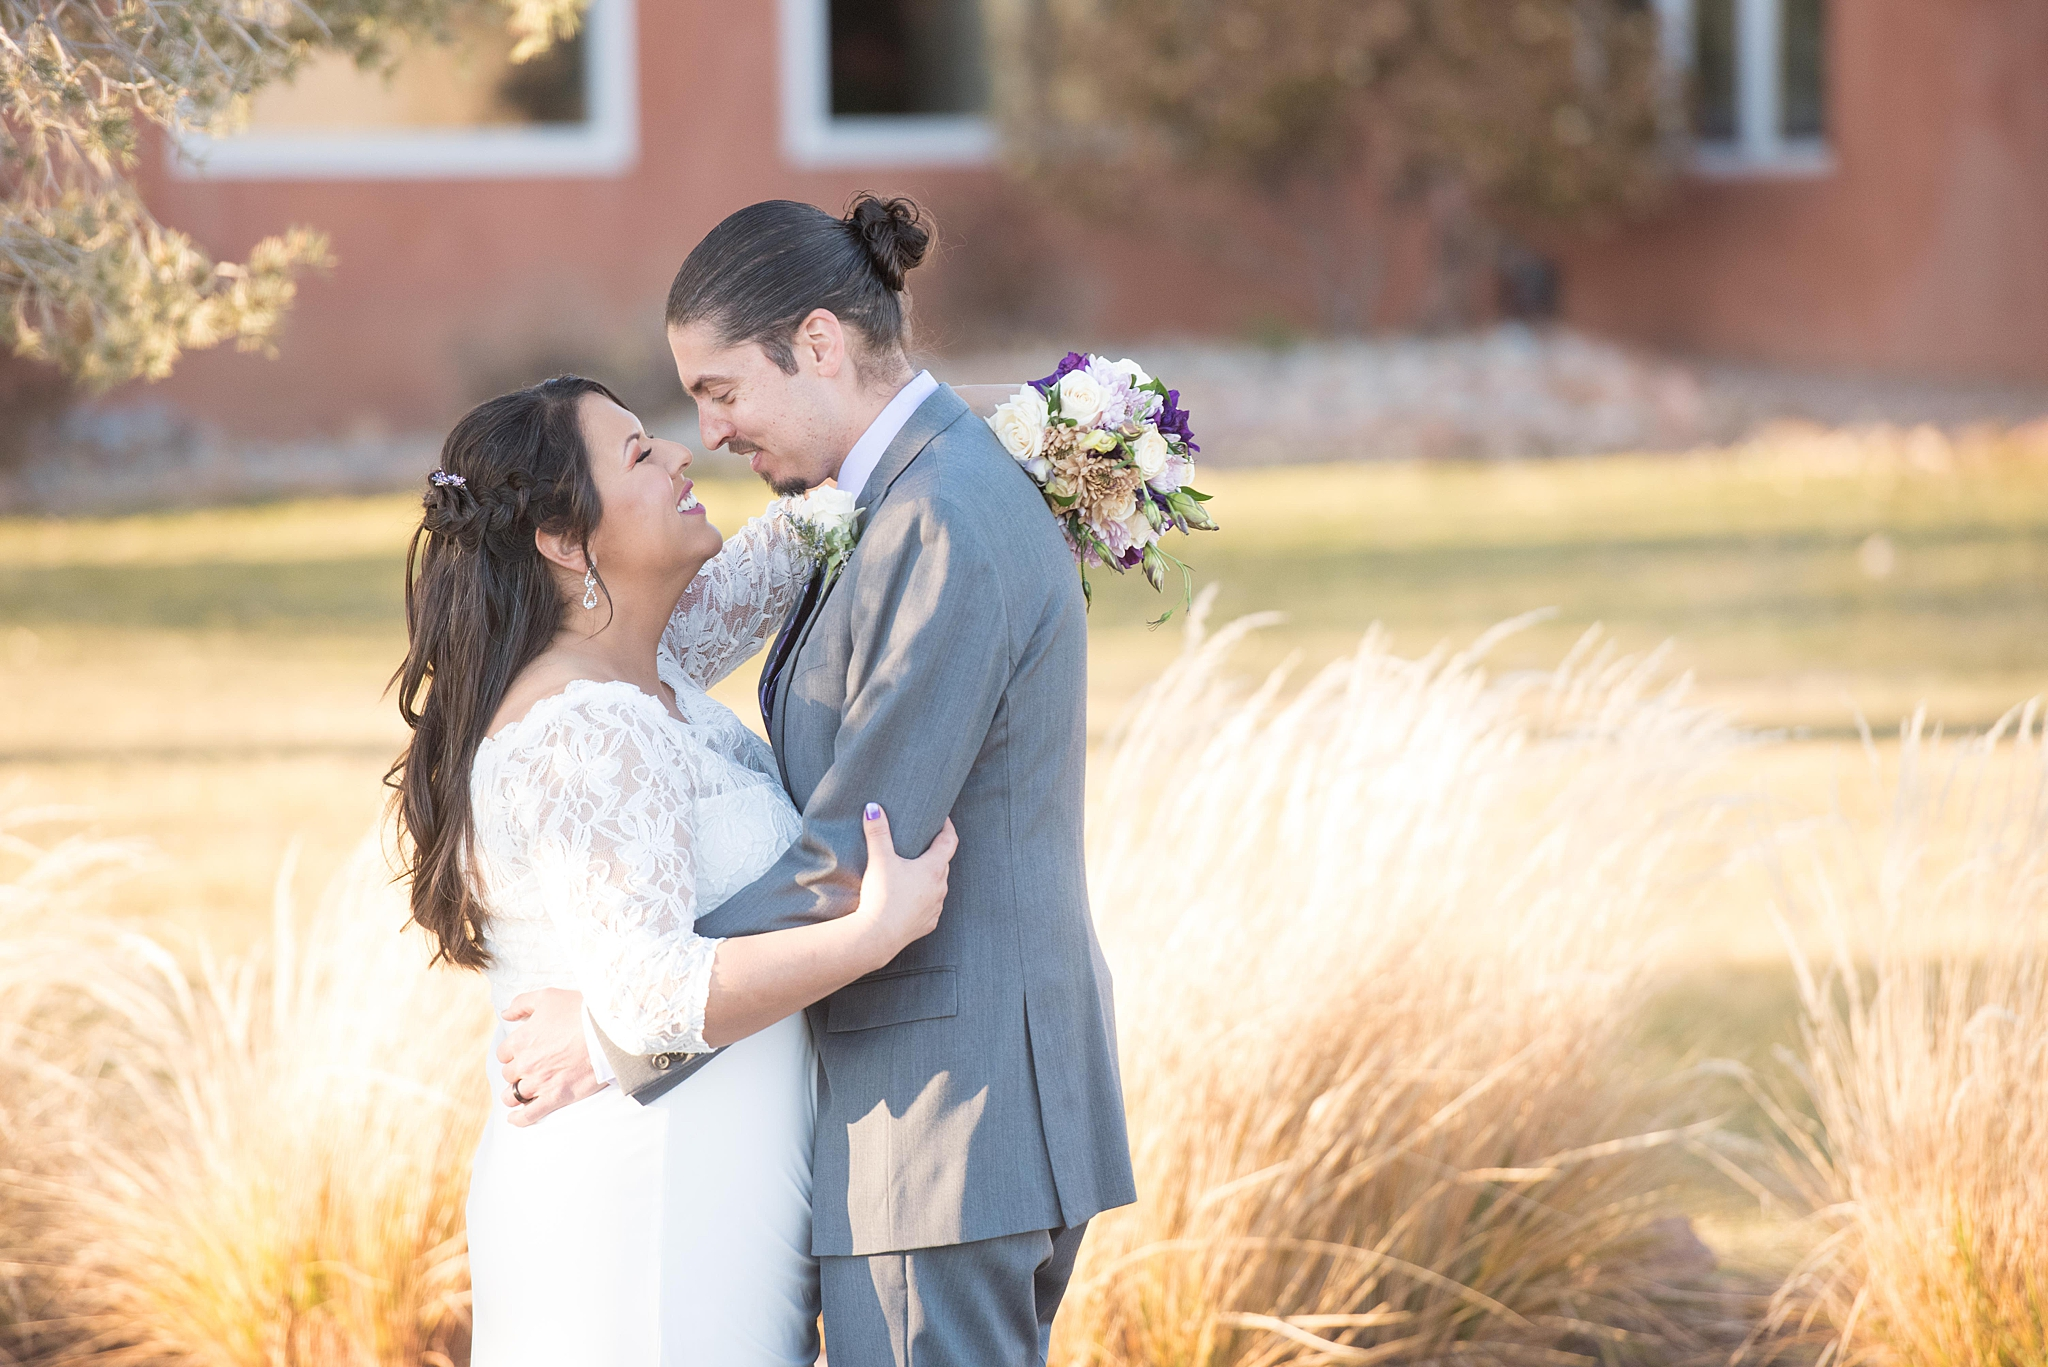 kaylakittsphotography-travis-michelle-prairie-star-albuquerque-wedding-photographer_0020.jpg